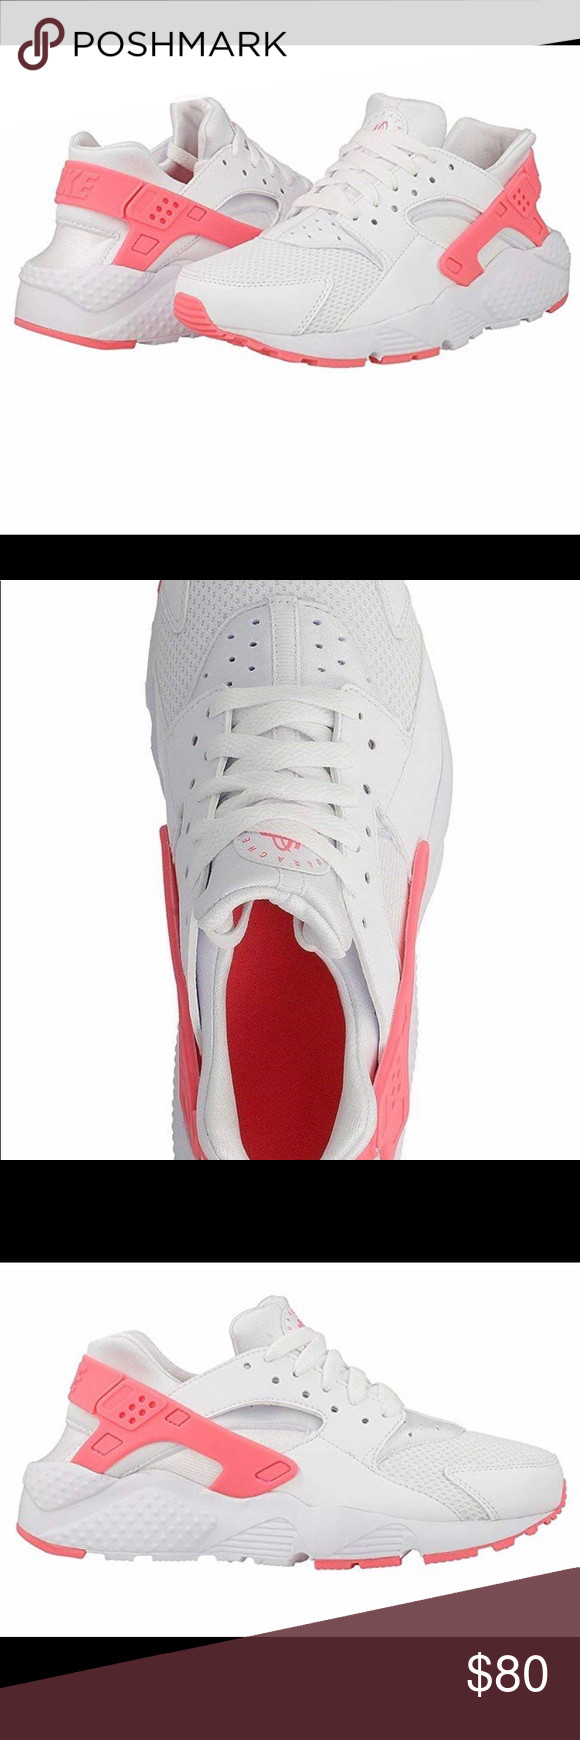 bb0684d6b0a4 Nike Huarache Run - White Pink Brand new in box - junior sizes converted to  women  Size 7   7.5 Shoes Sneakers